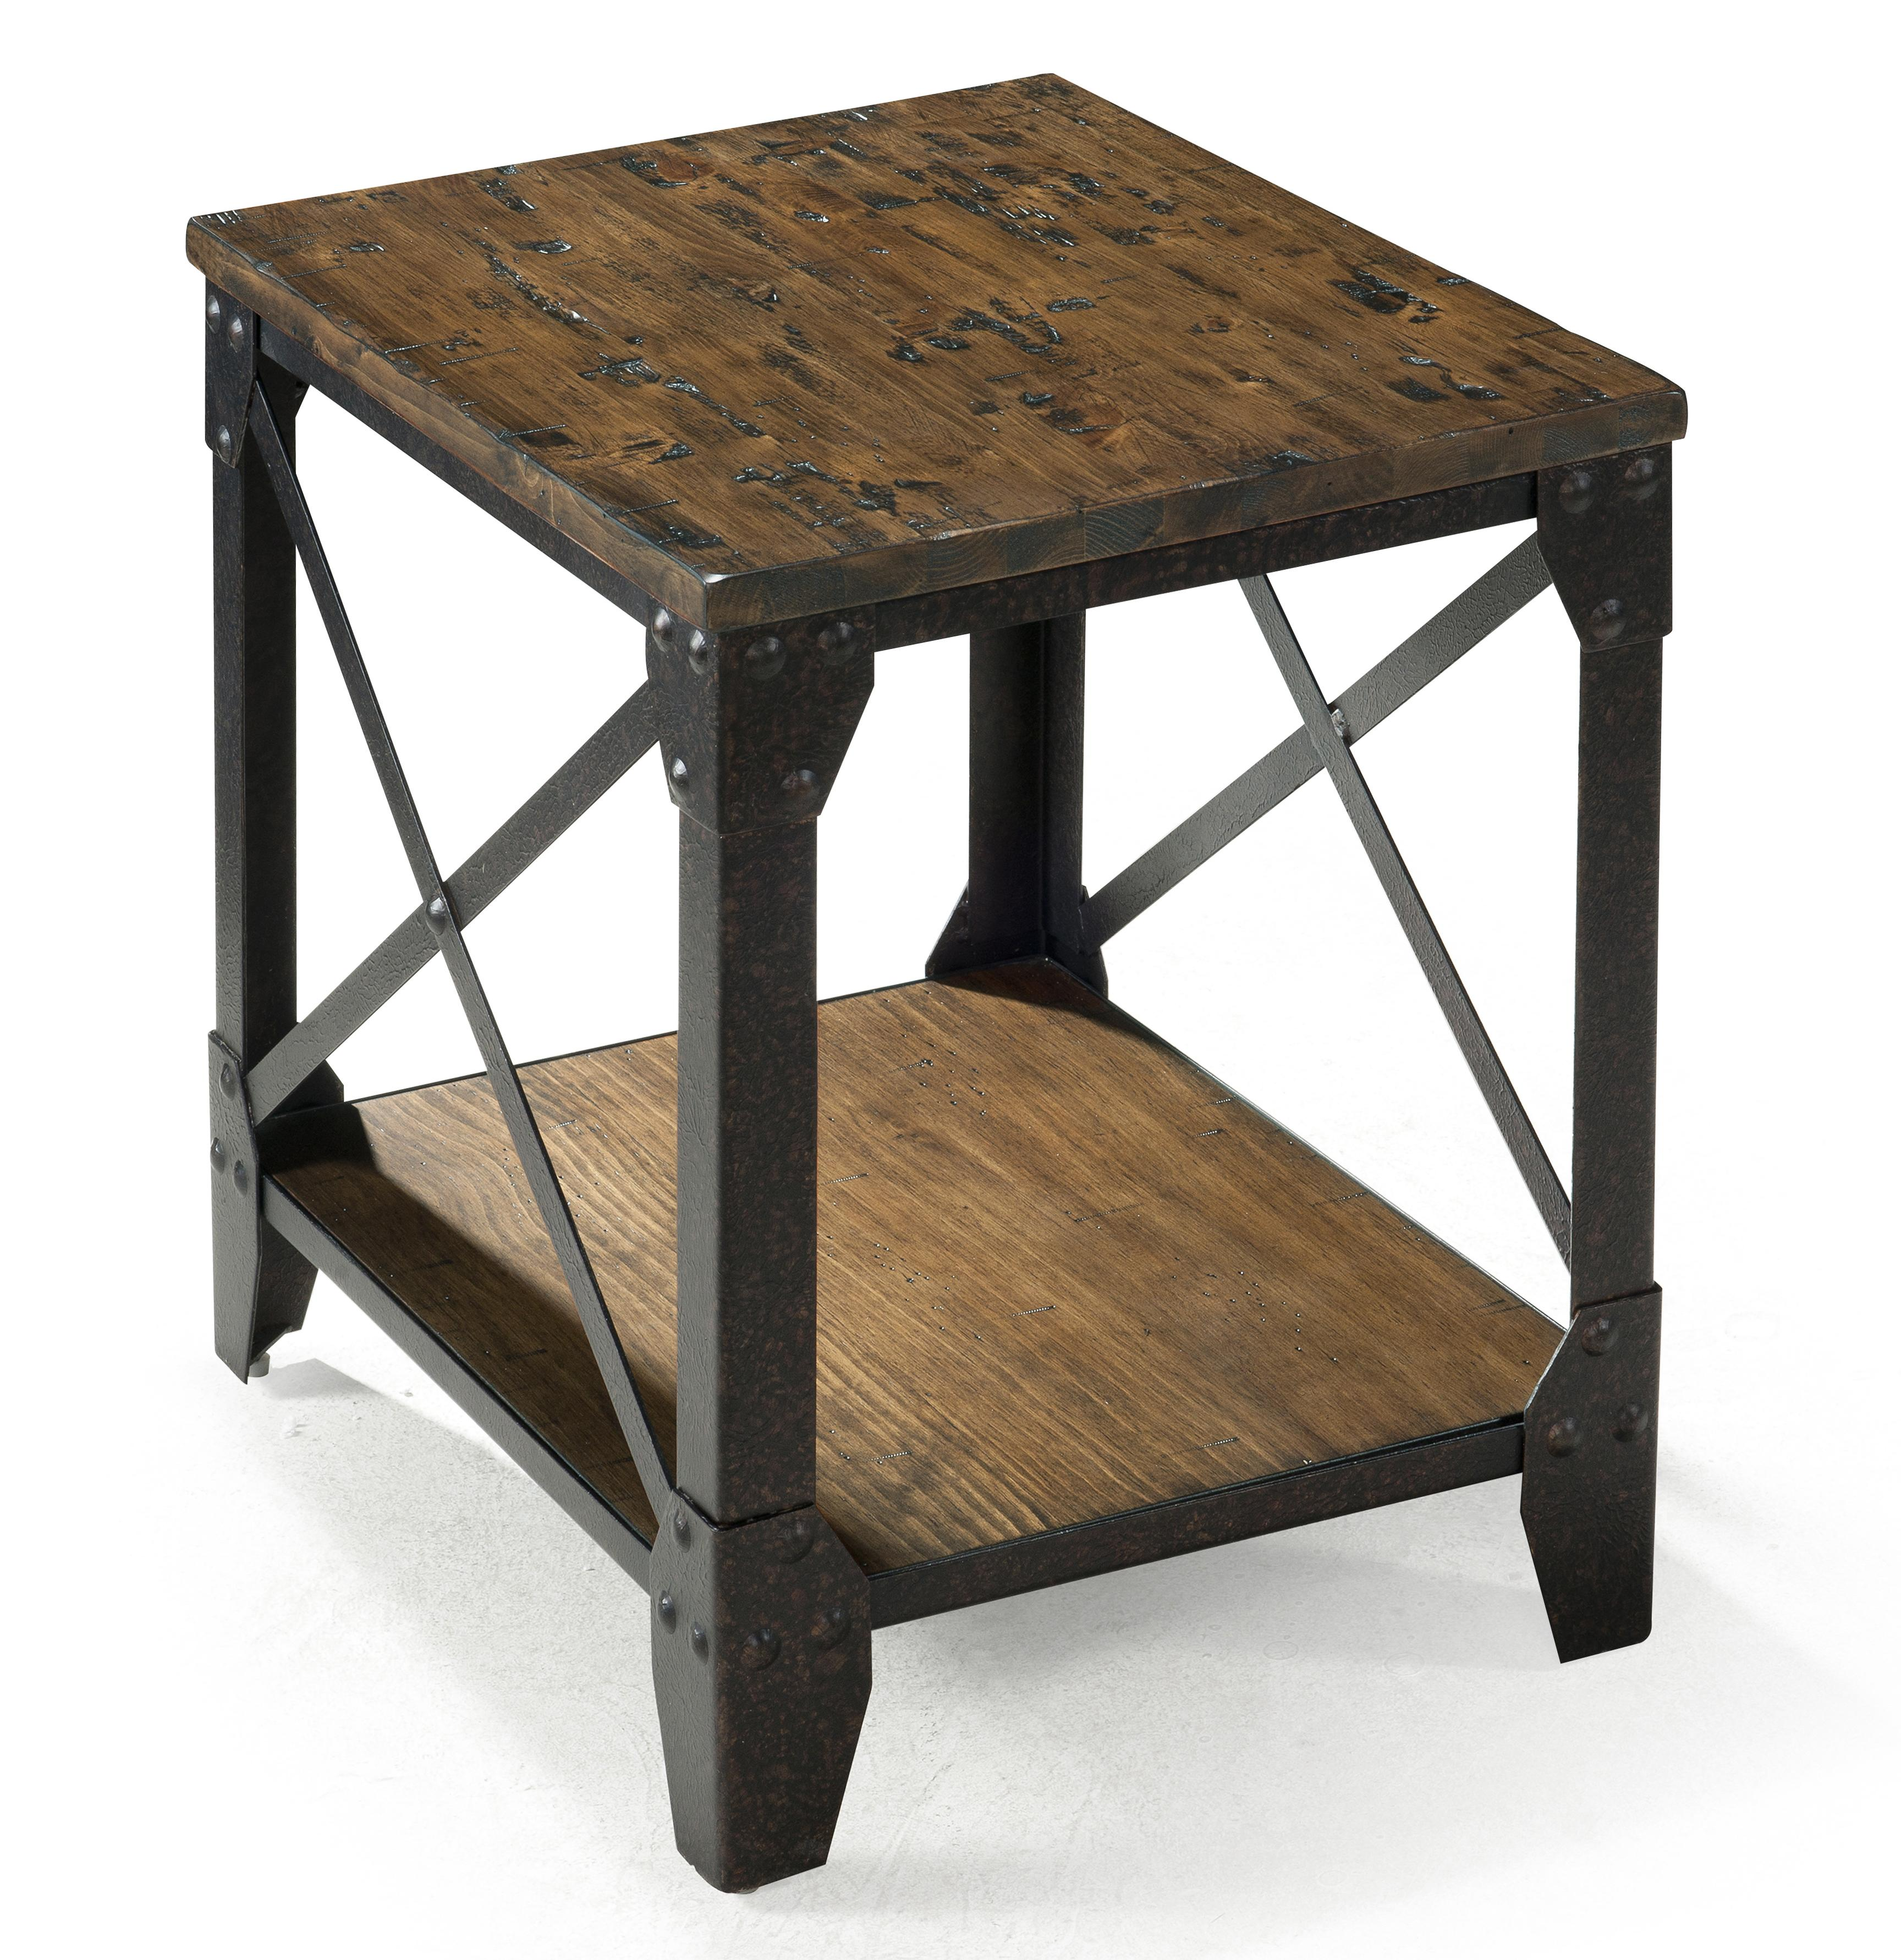 small rectangular end table with rustic iron legs magnussen home products color pinebrook low height accent antique three legged upholstered chair pottery barn high lap desk